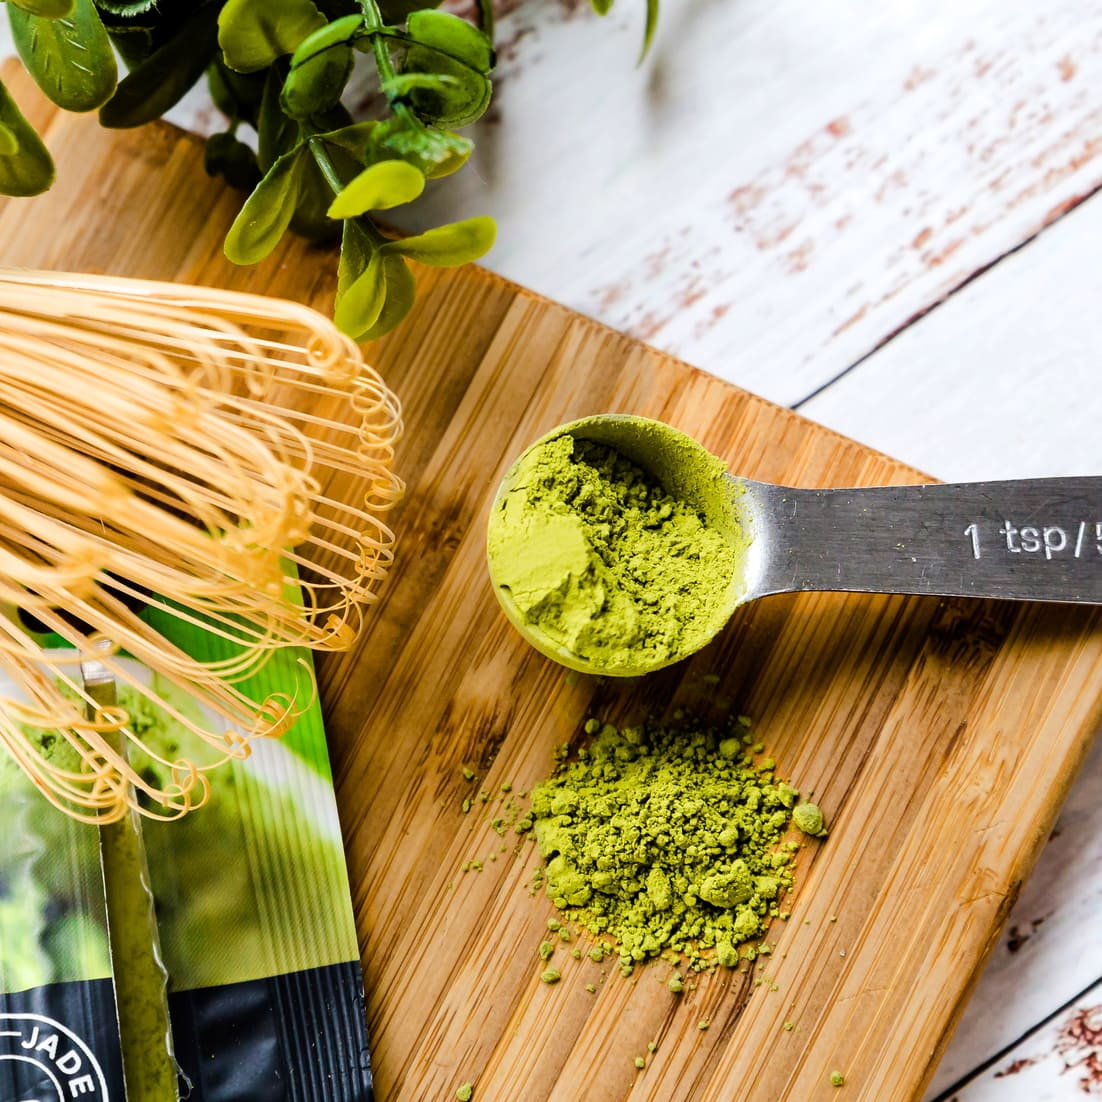 Matcha powder inside a measuring spoon next to a wooden matcha whisk